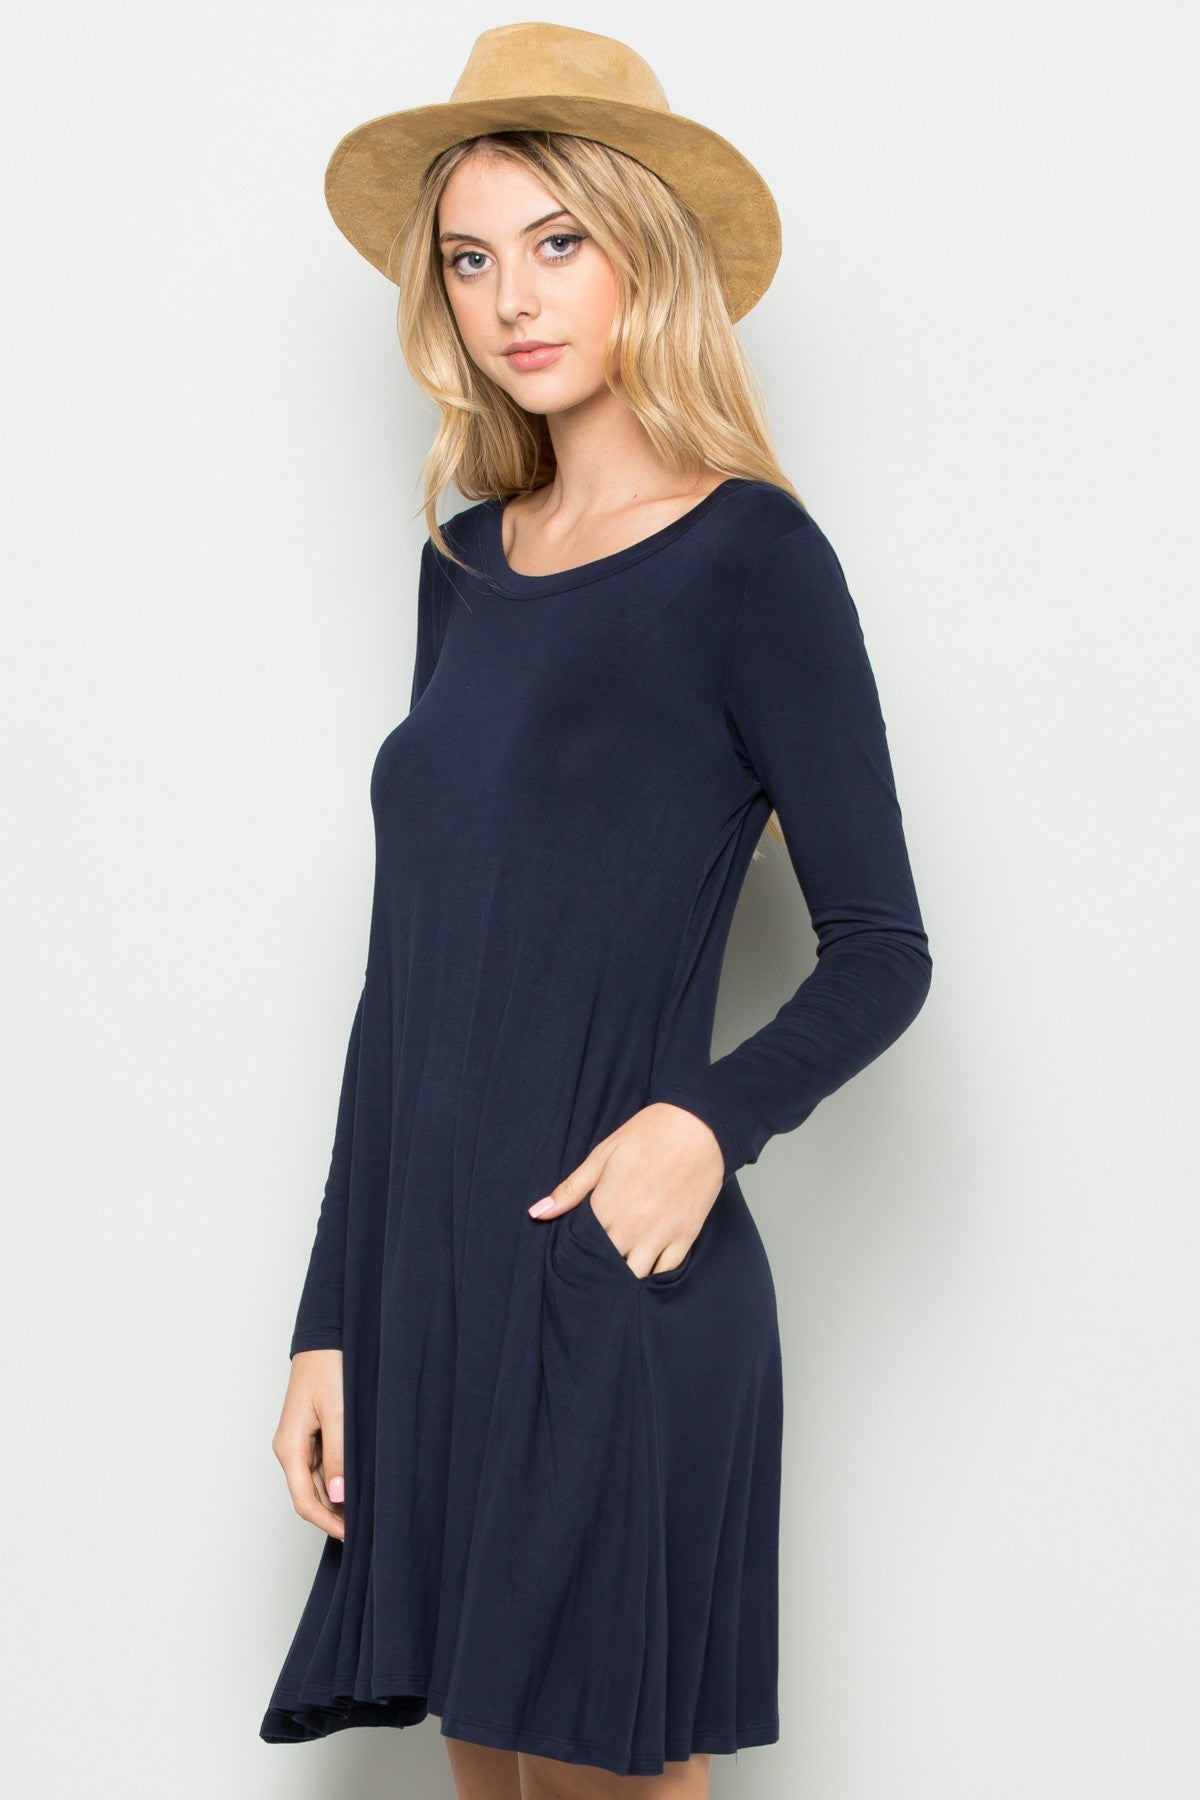 Navy Long Sleeve Open Back Swing Dress - Dresses - My Yuccie - 3